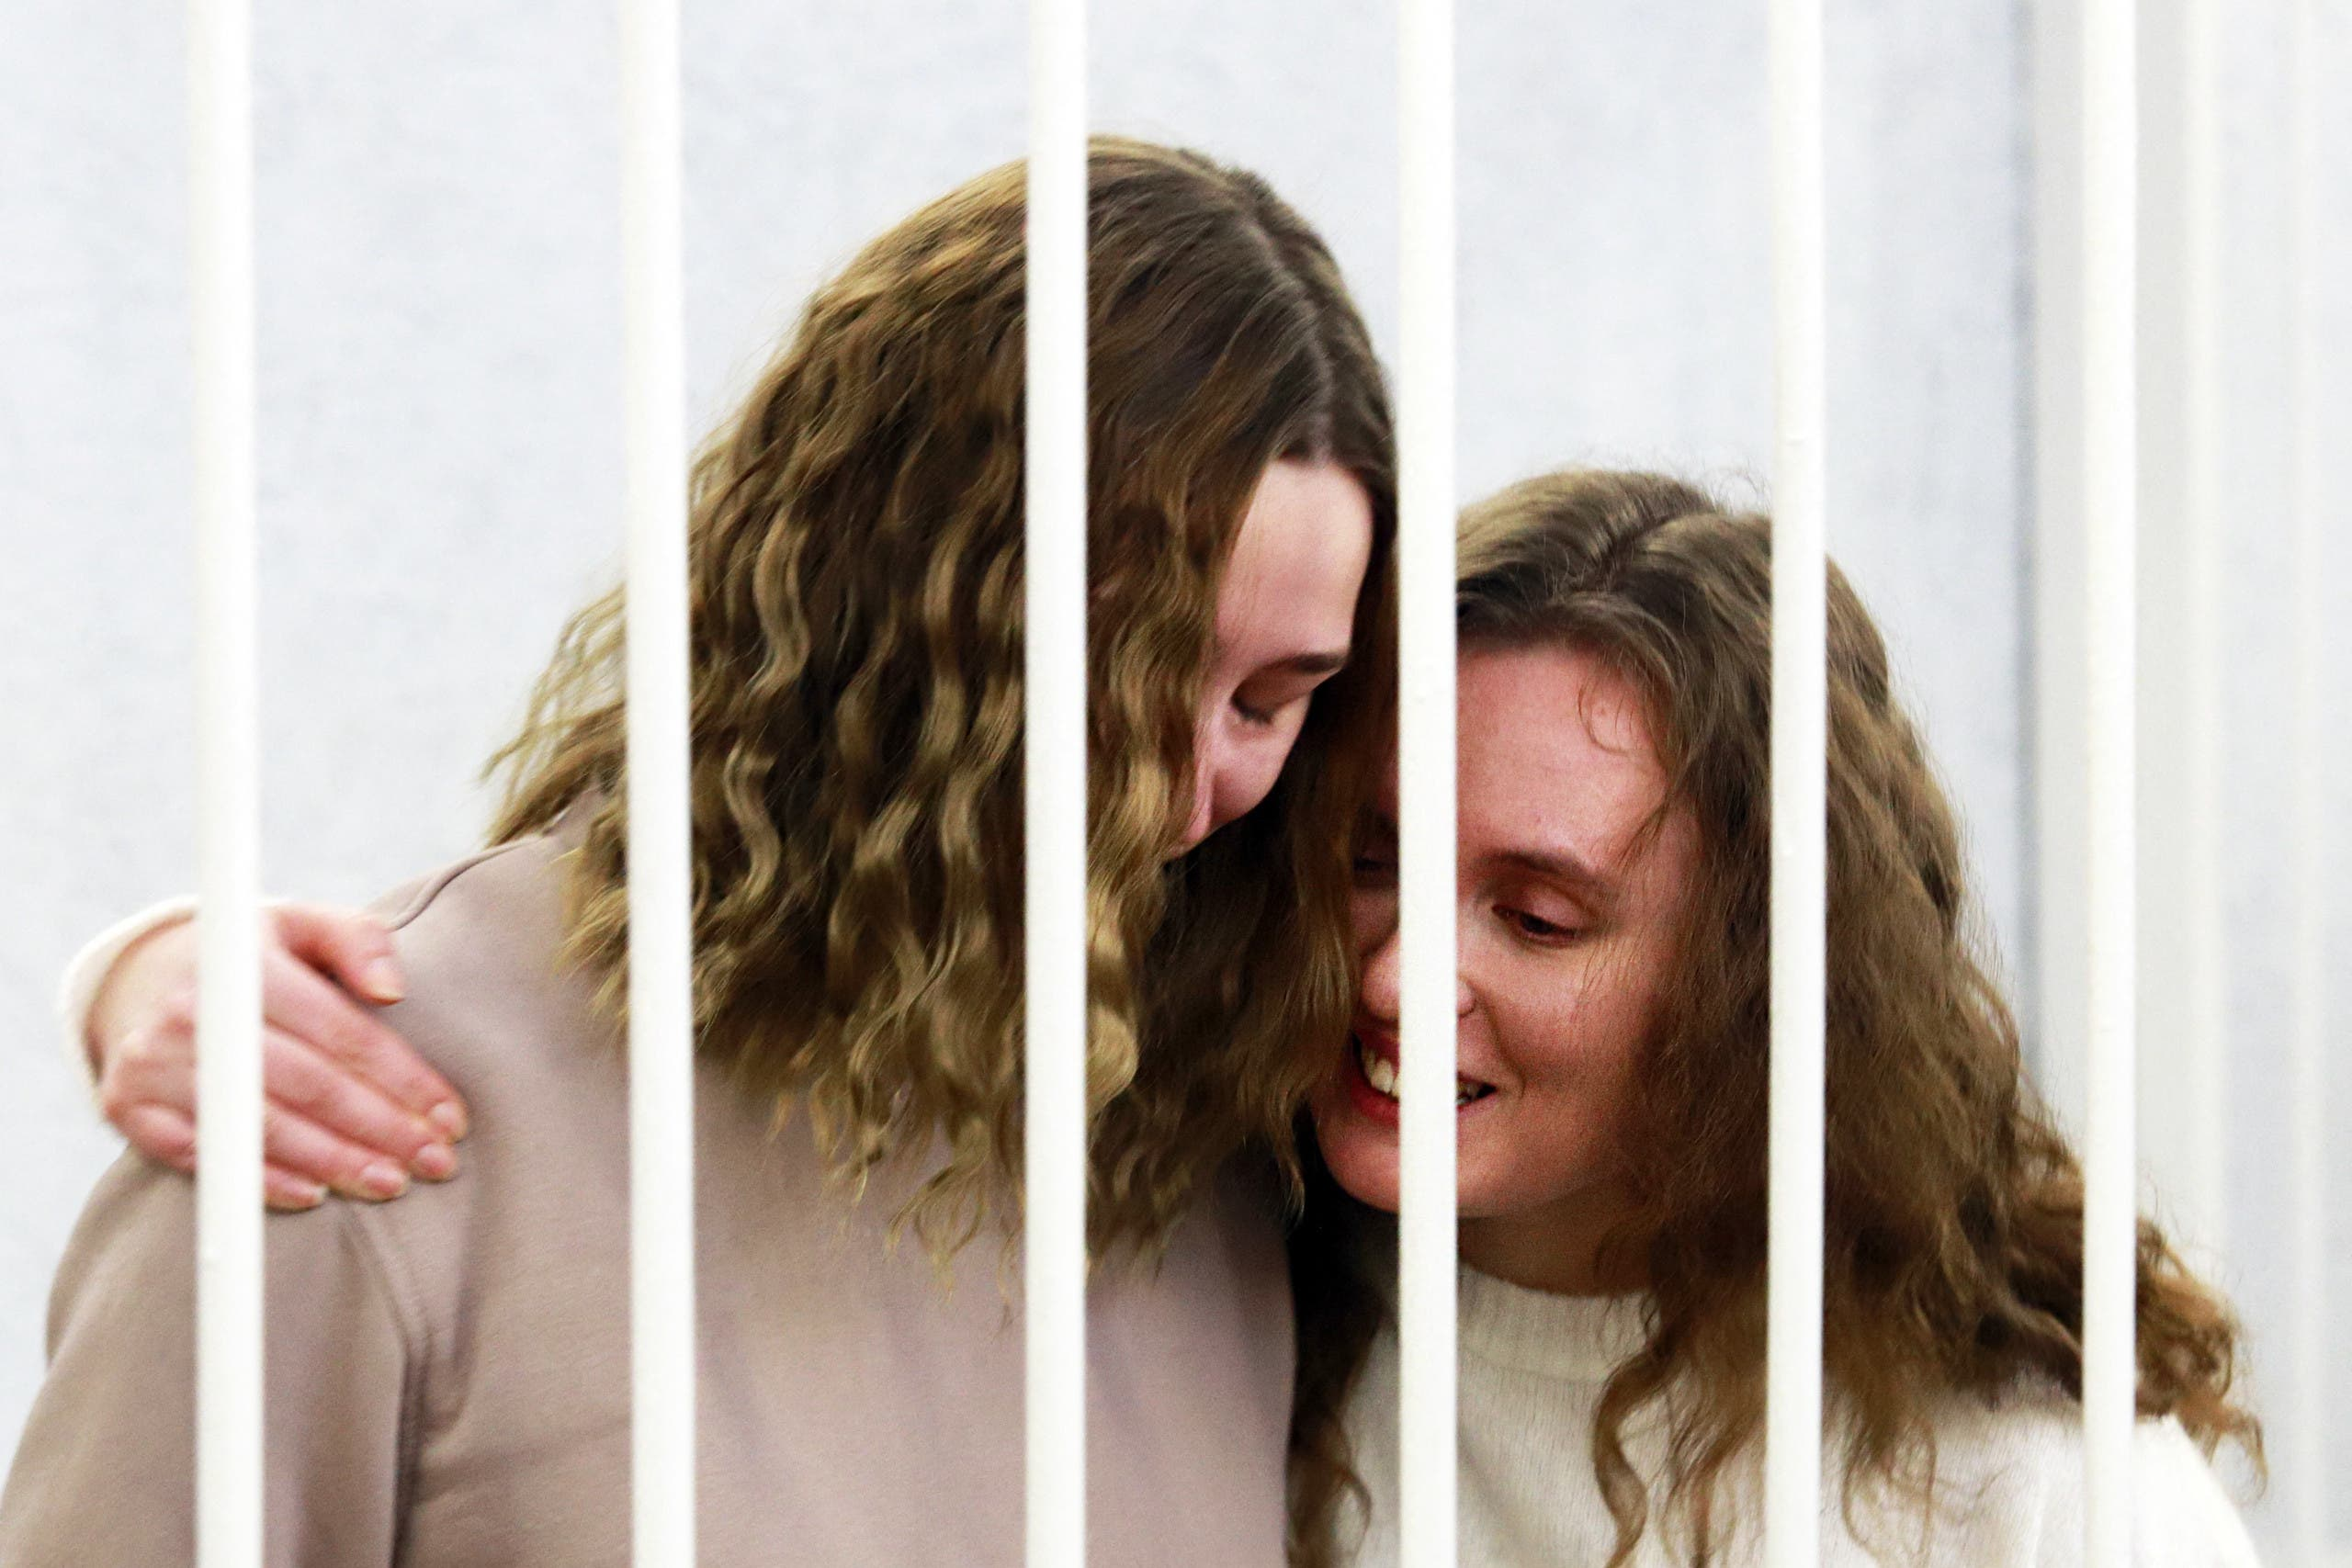 Belsat TV journalists Katerina Bakhvalova (R) and Daria Chultsova (L), who were detained in Nov 2020 while reporting on anti-government protests, embrace each other in a defendants' cage before the start of their trial in Minsk. (File photo: AFP)